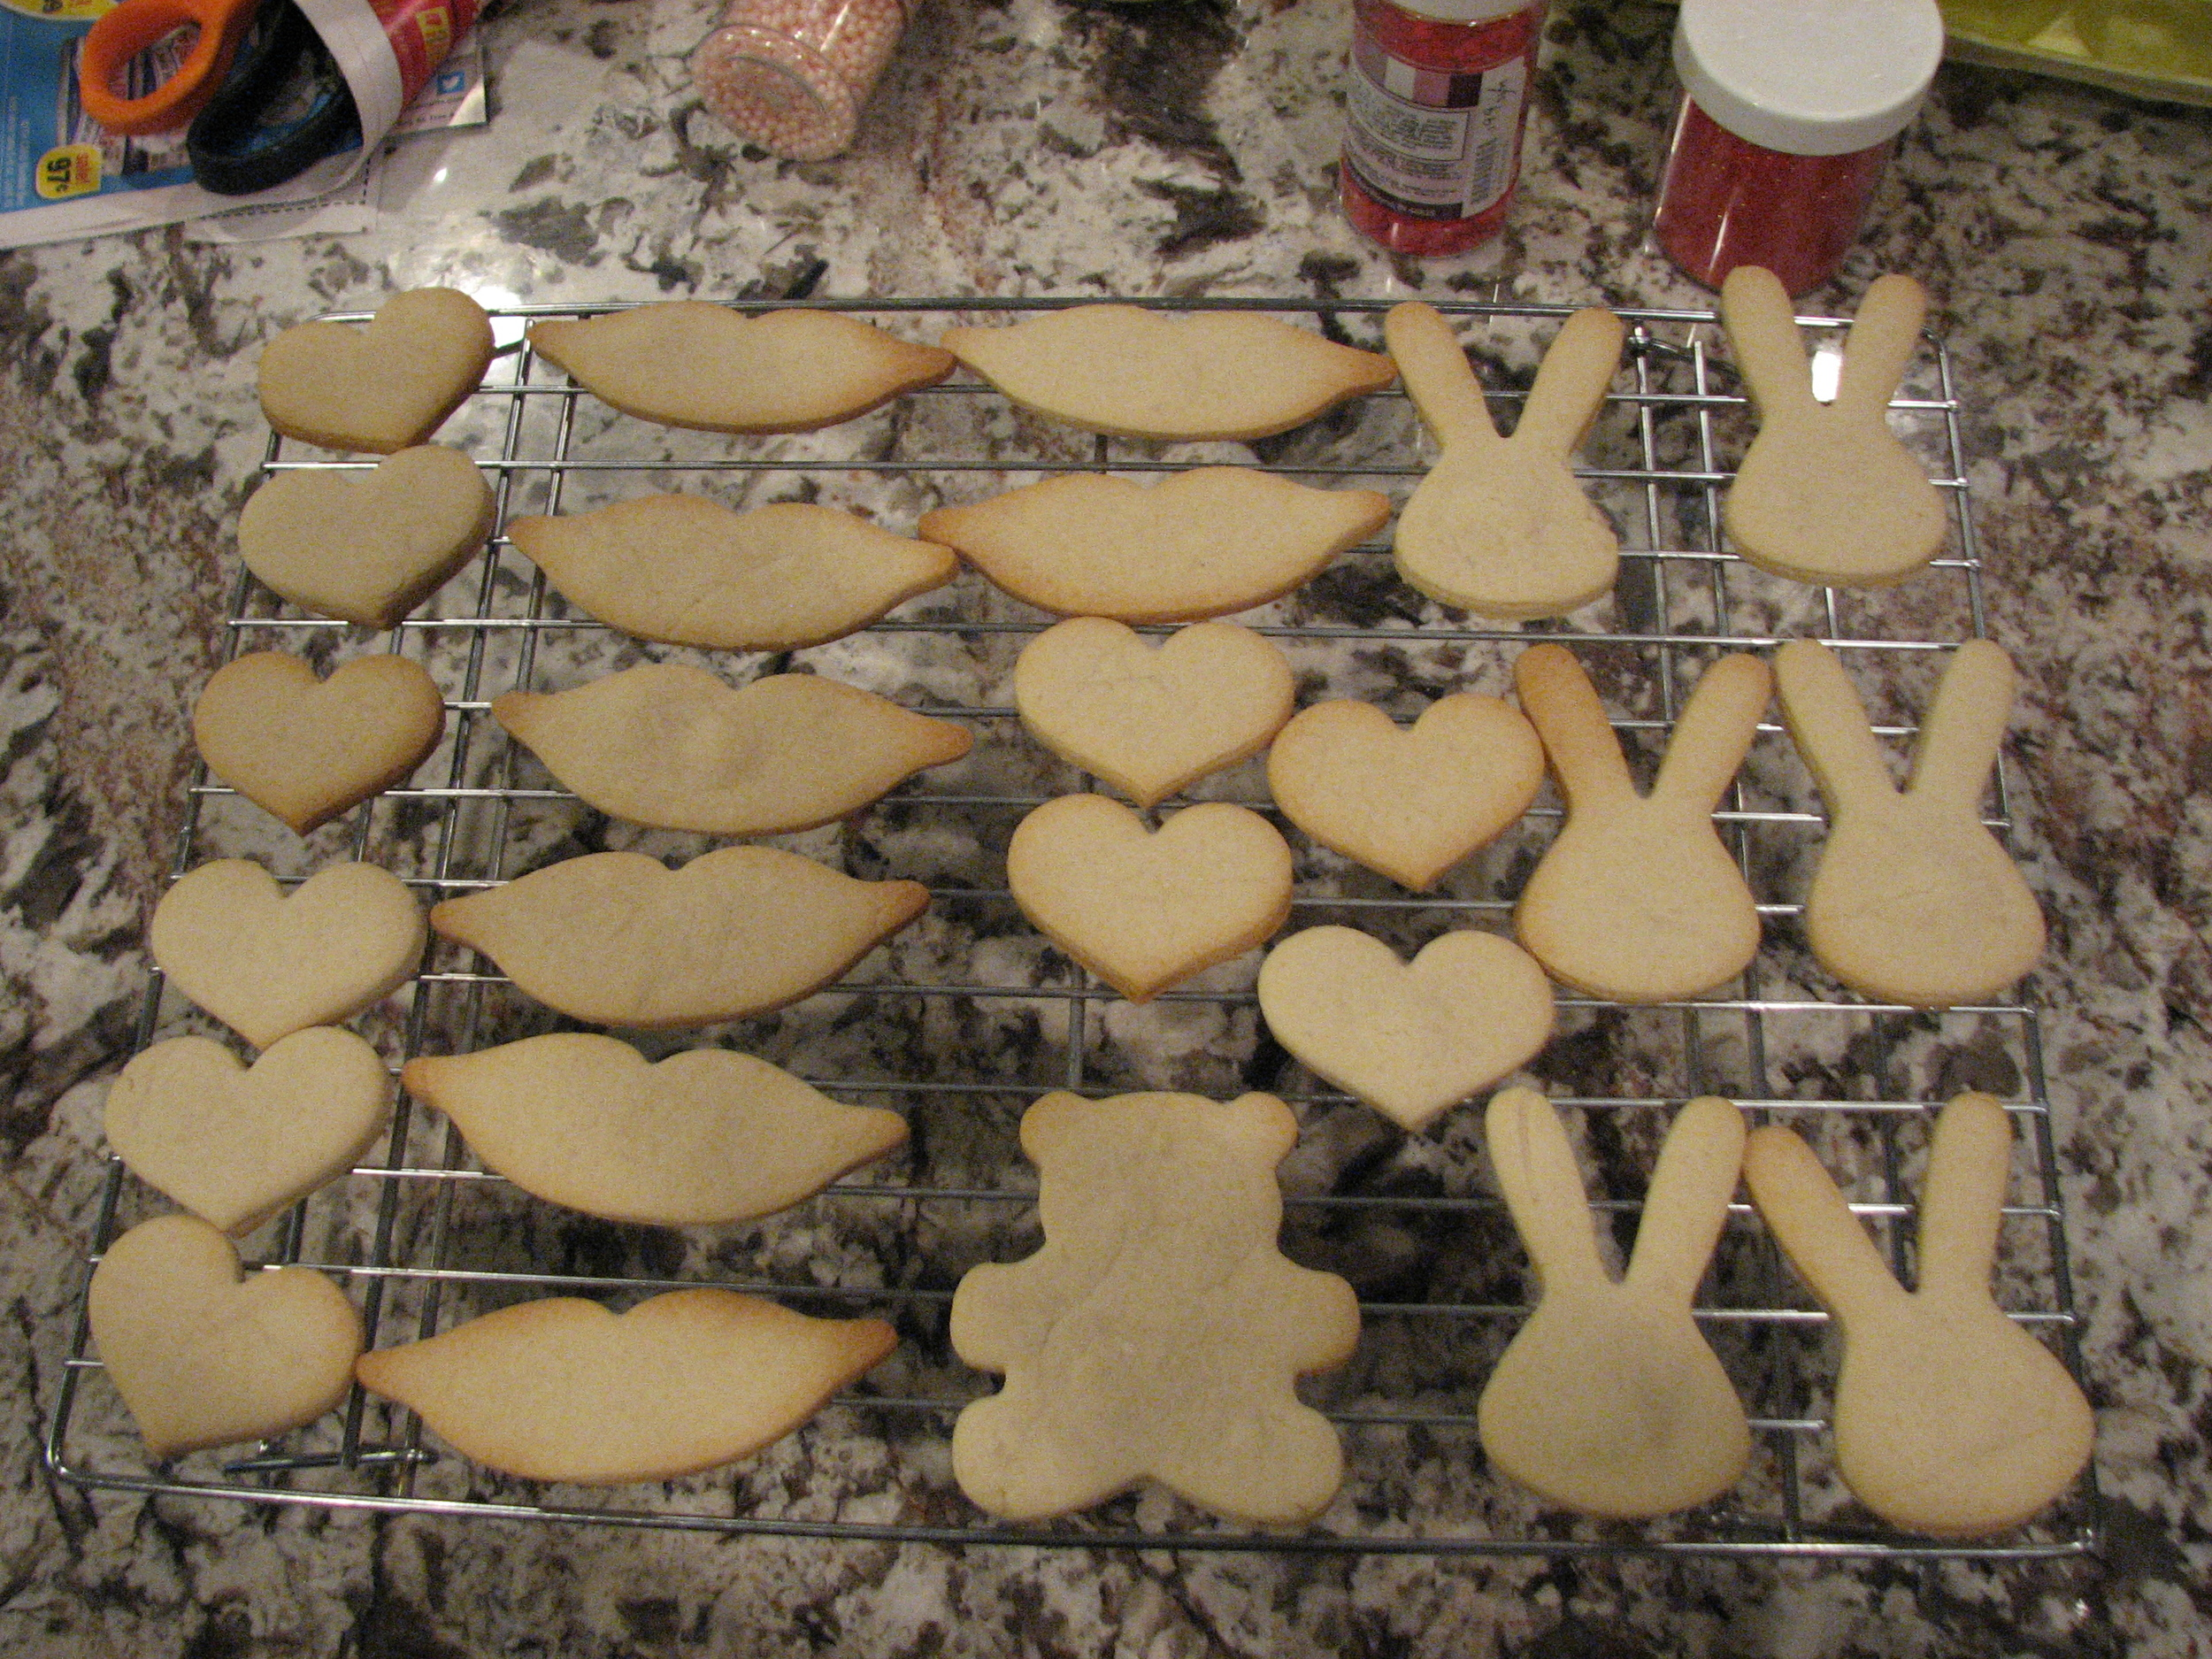 There was extra cookie dough so we baked extra hearts, lips, bunnies and a teddy bear.